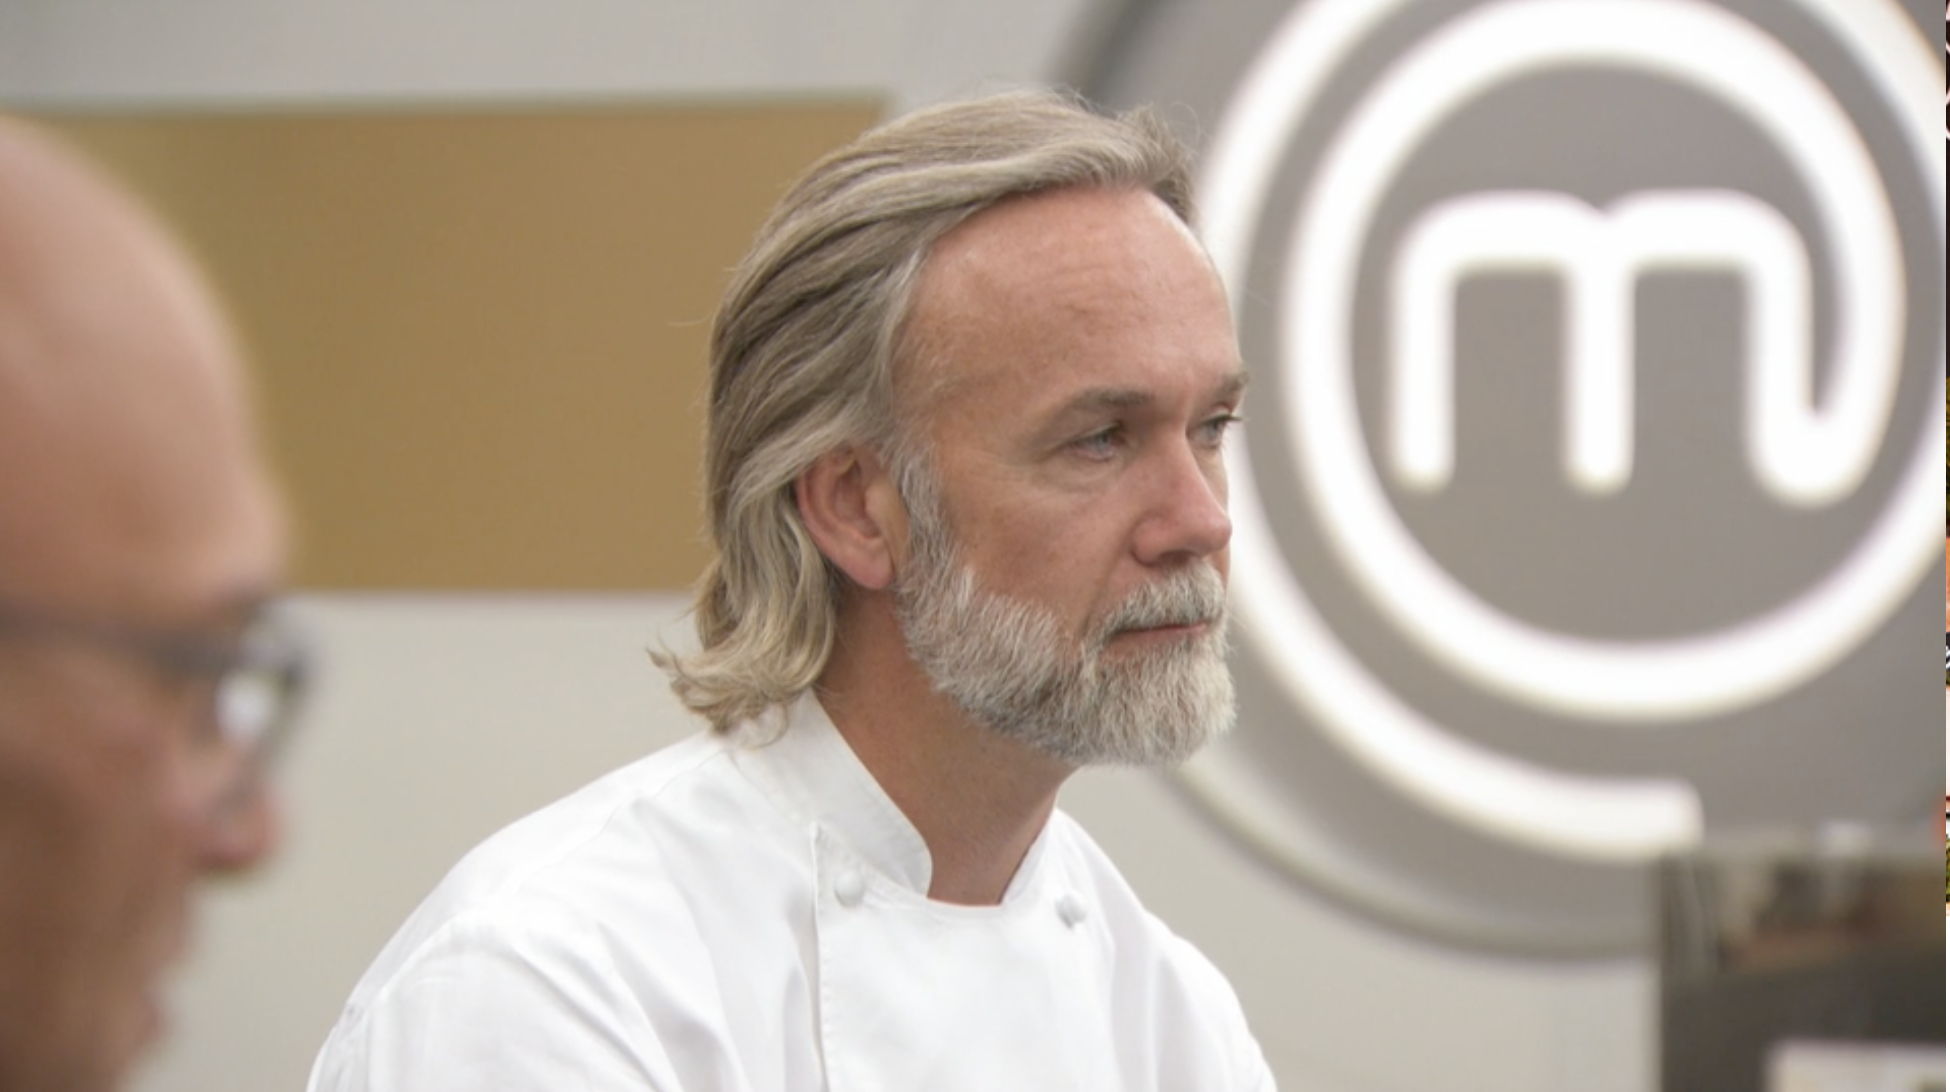 Marcus Wareing sits on the set of Masterchef the Professionals 2020